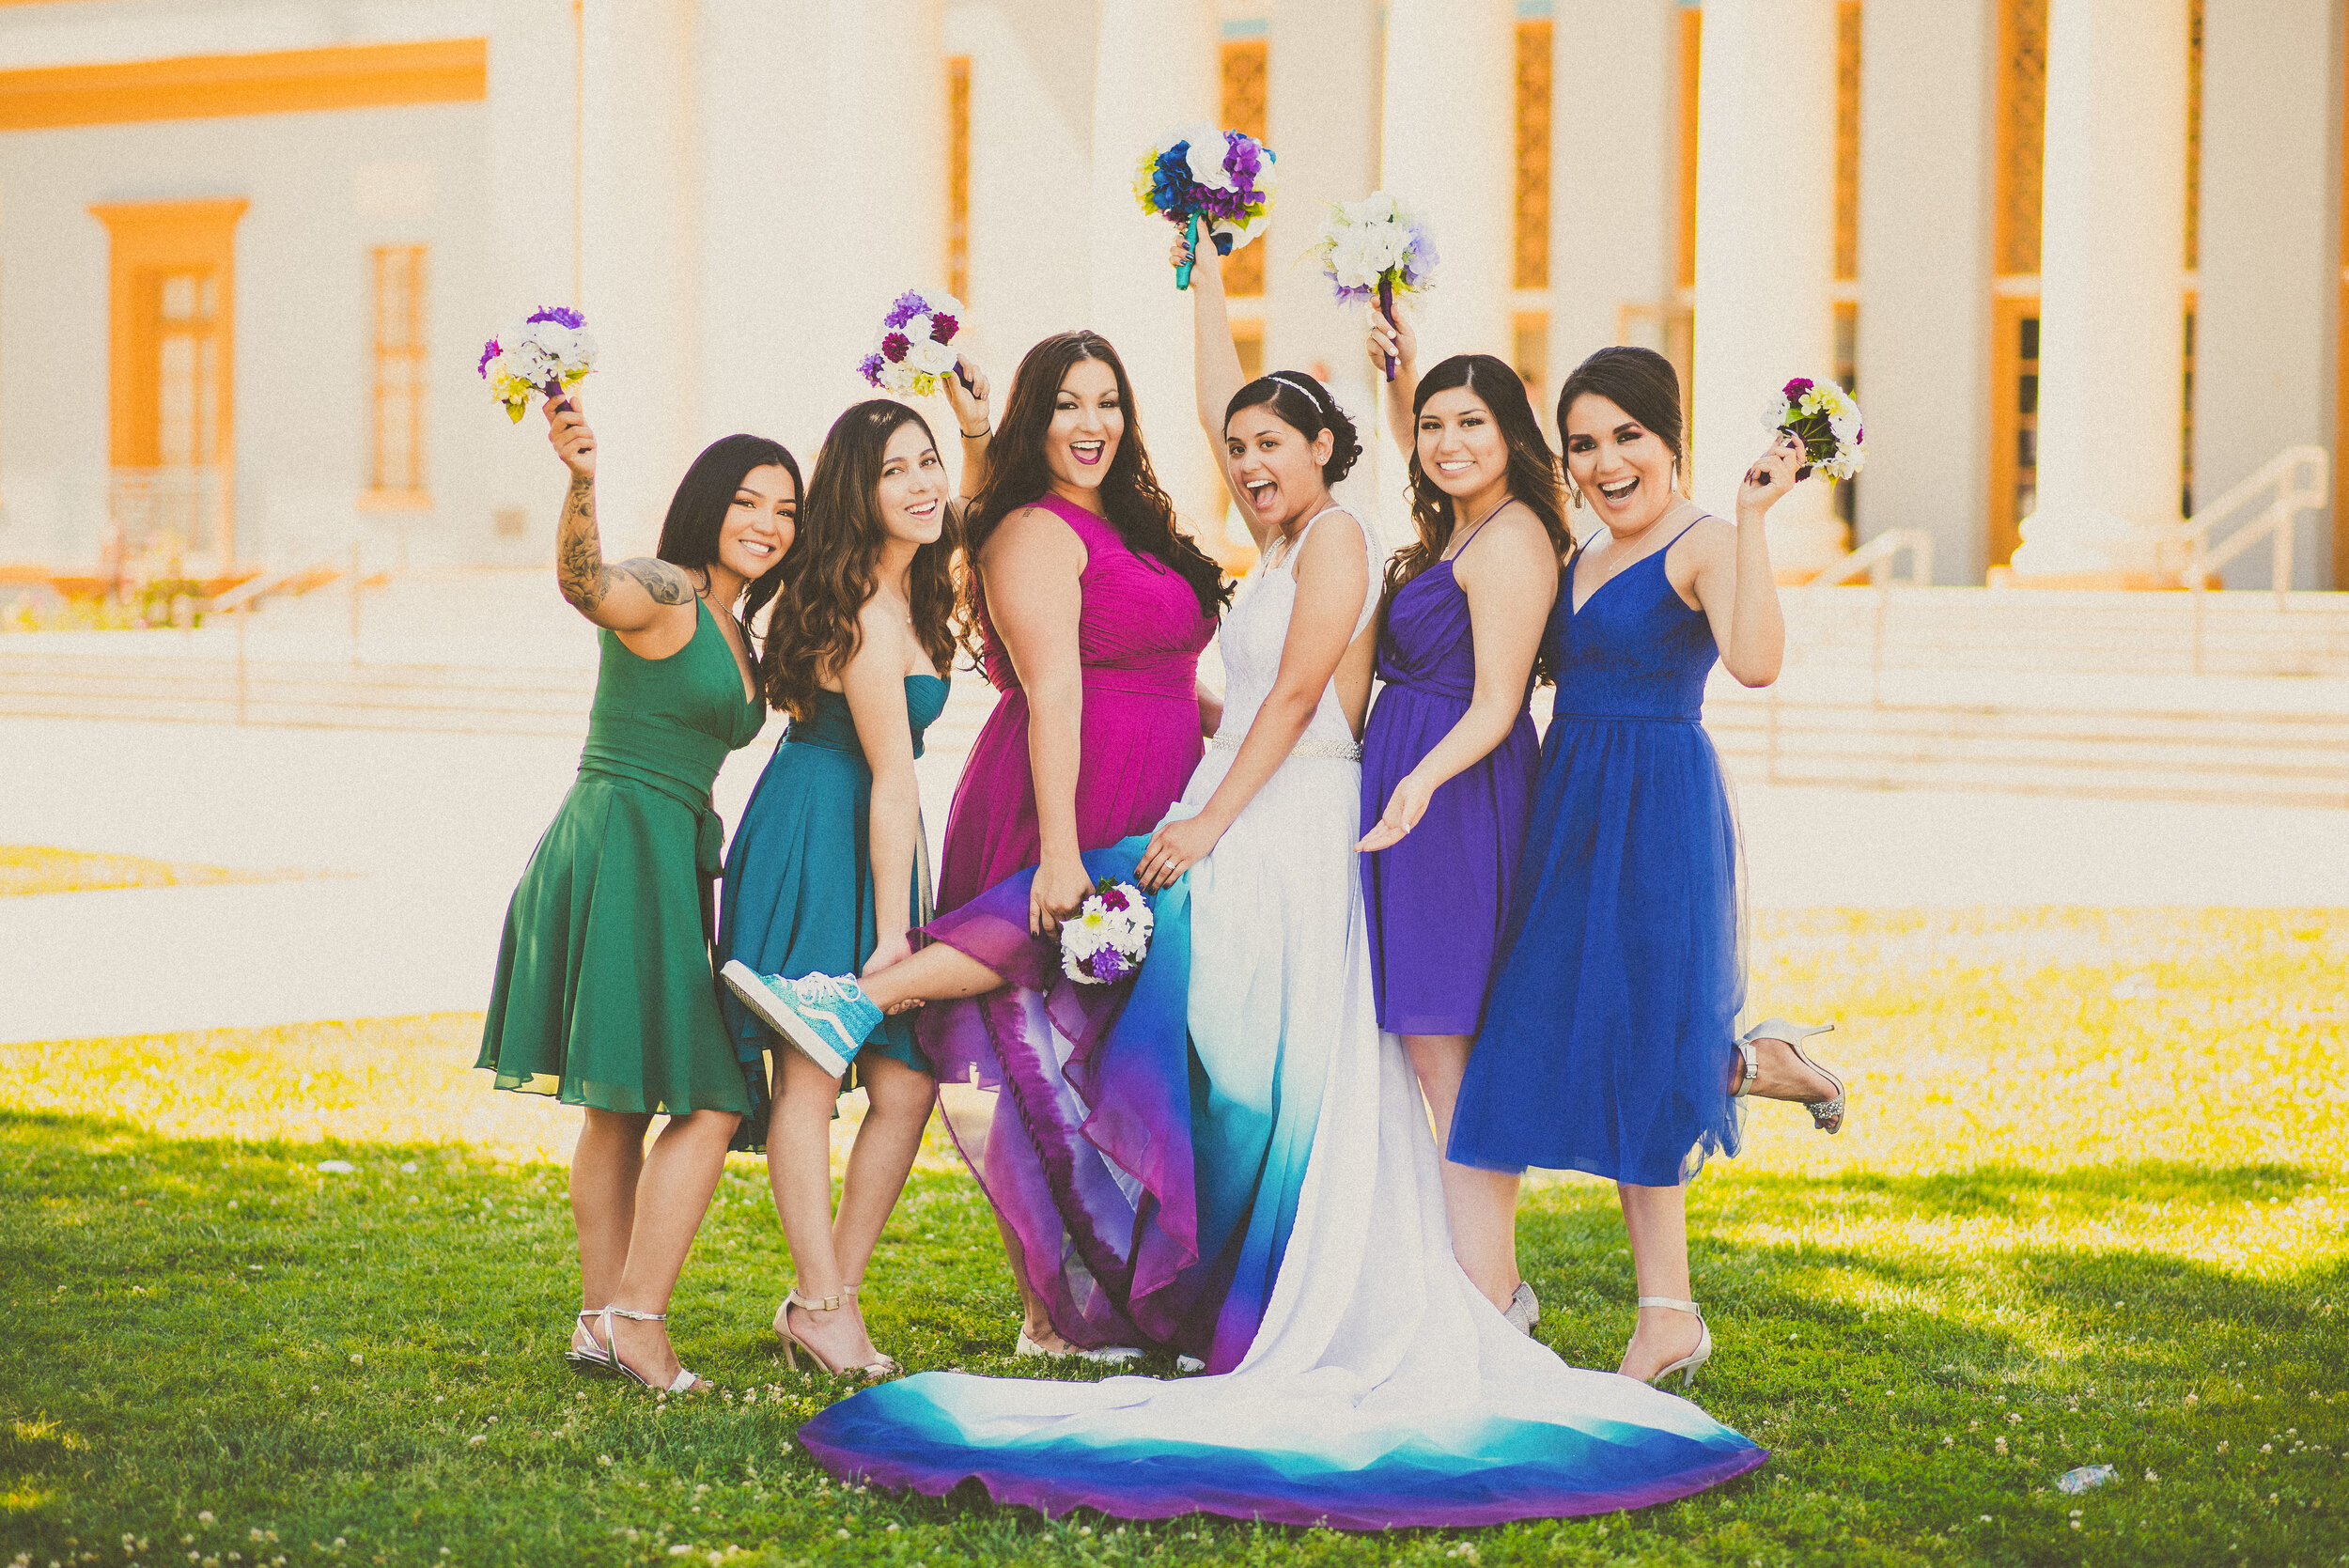 Azua Wedding - Bridesmaids + Groomsmen-12.jpg